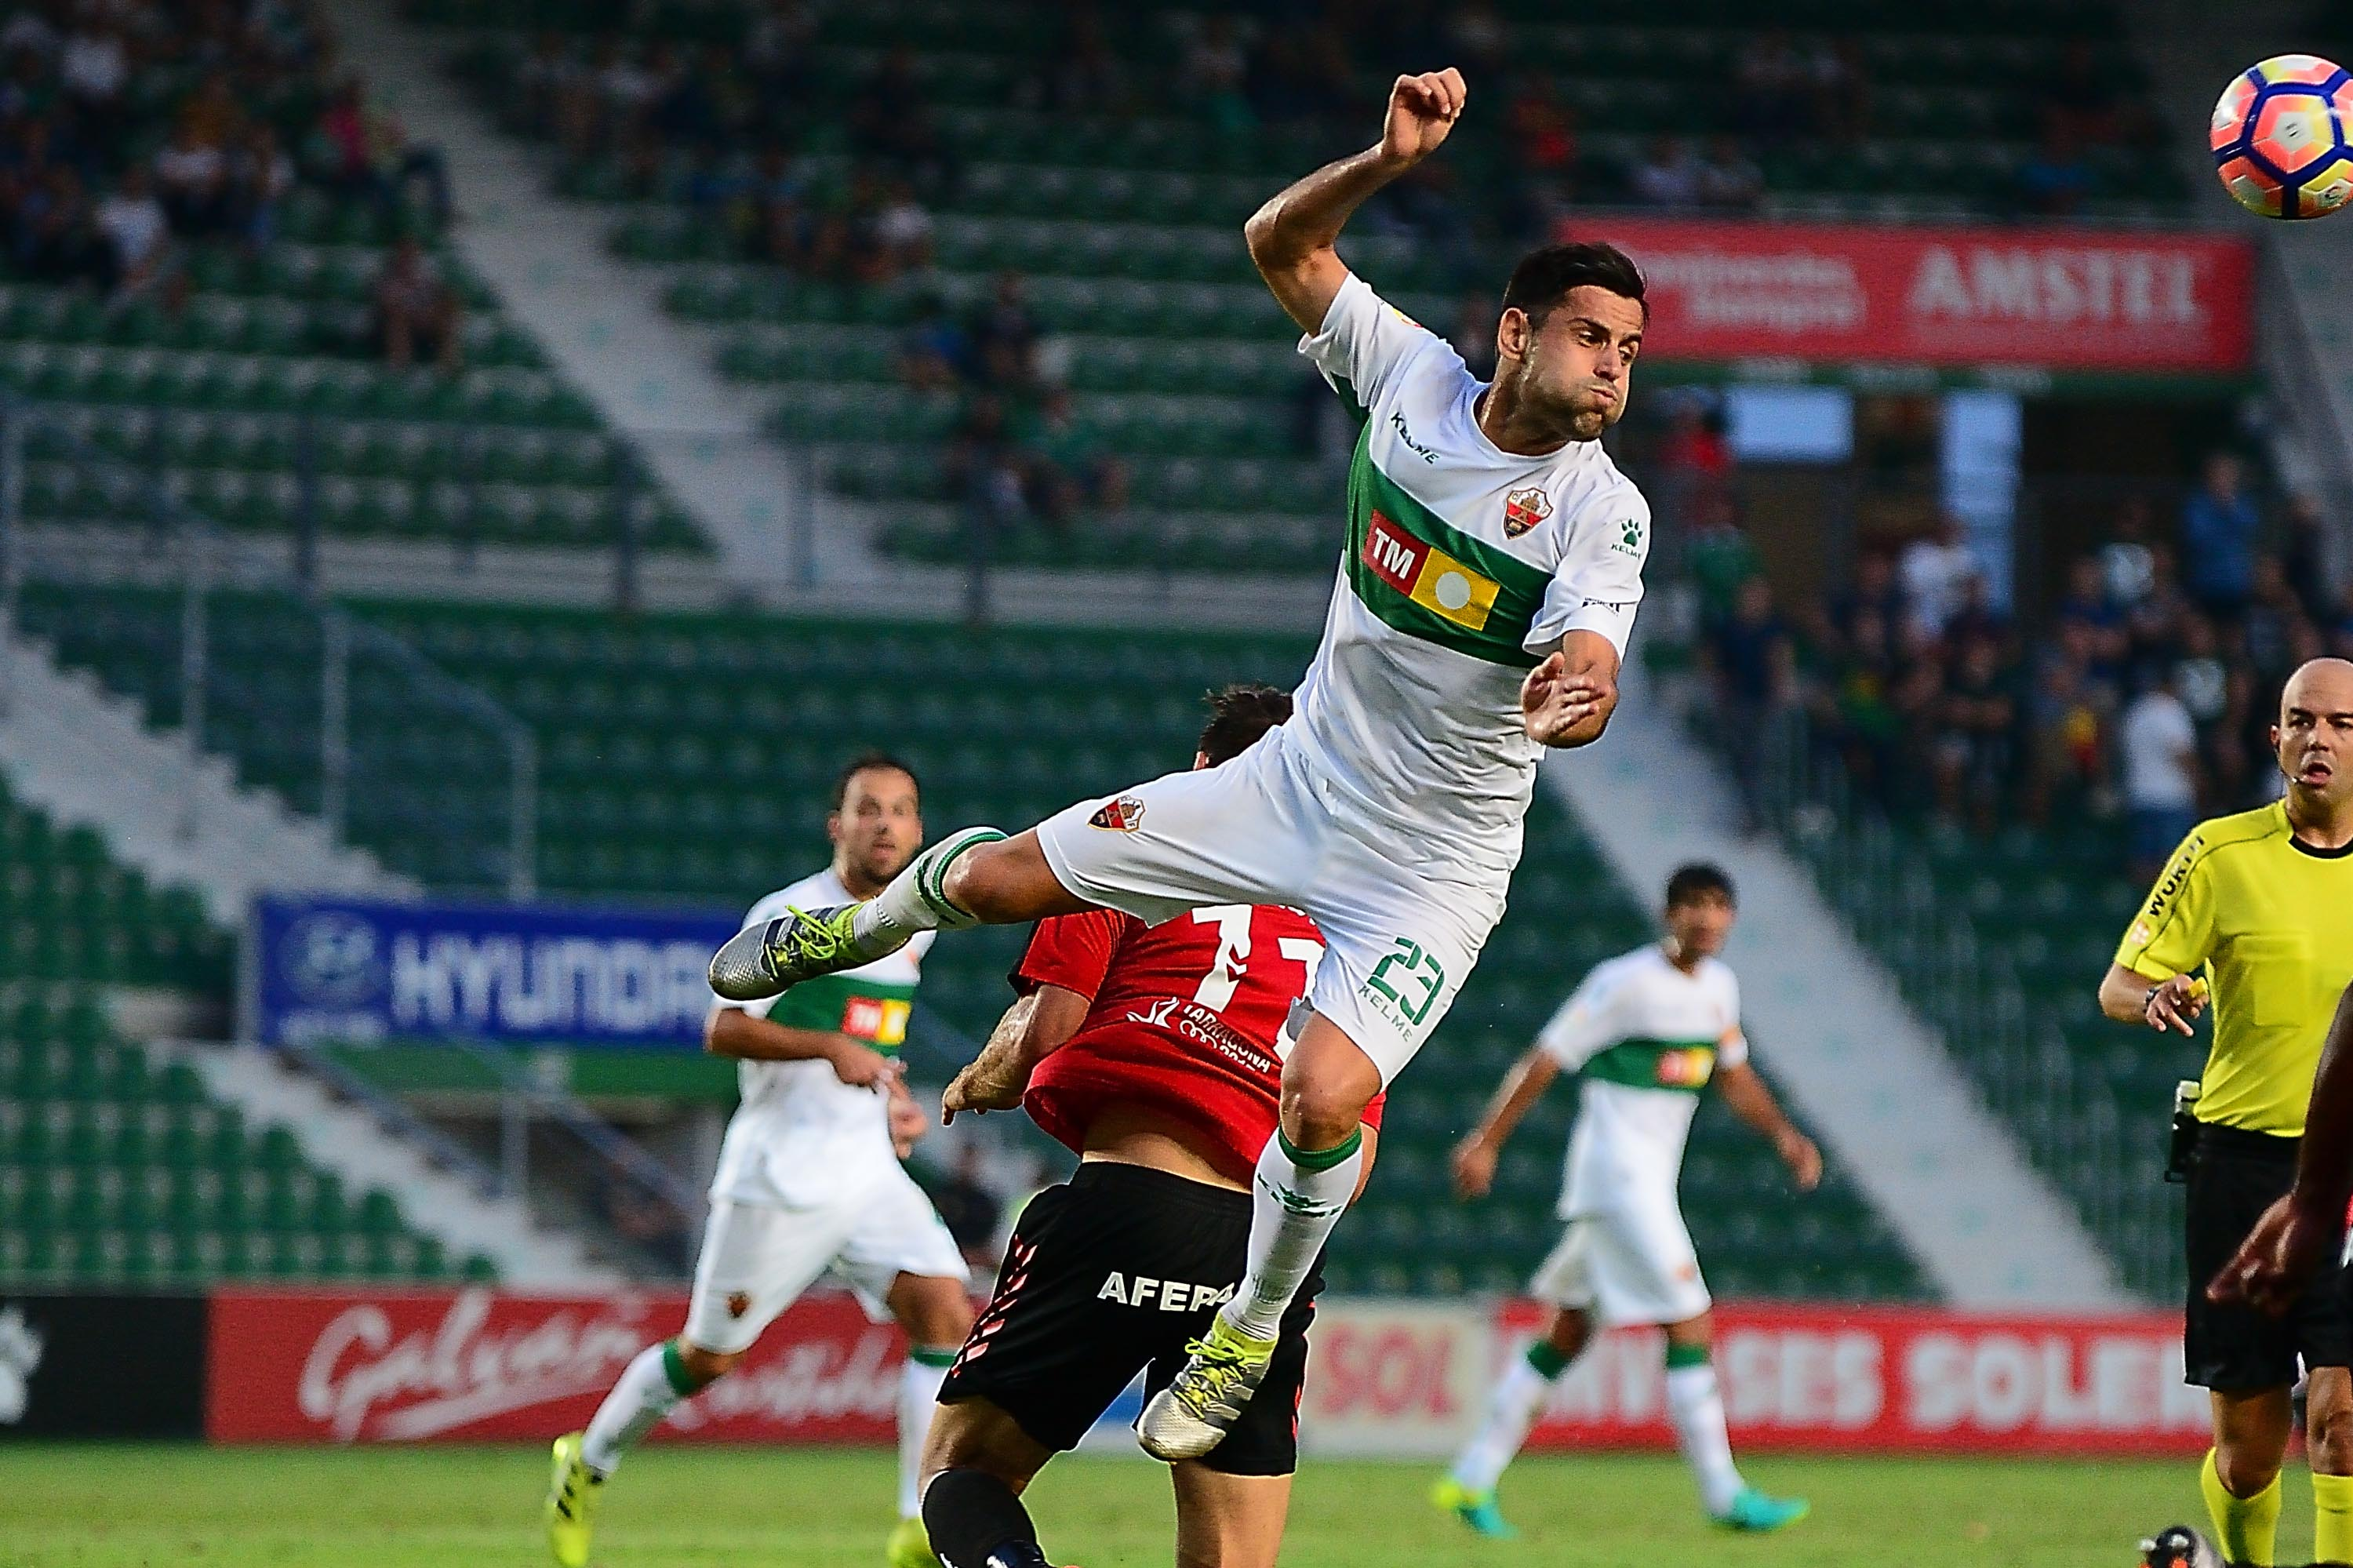 Albert Dorca scored the Elche fourth as they came from behind to scrounge a point